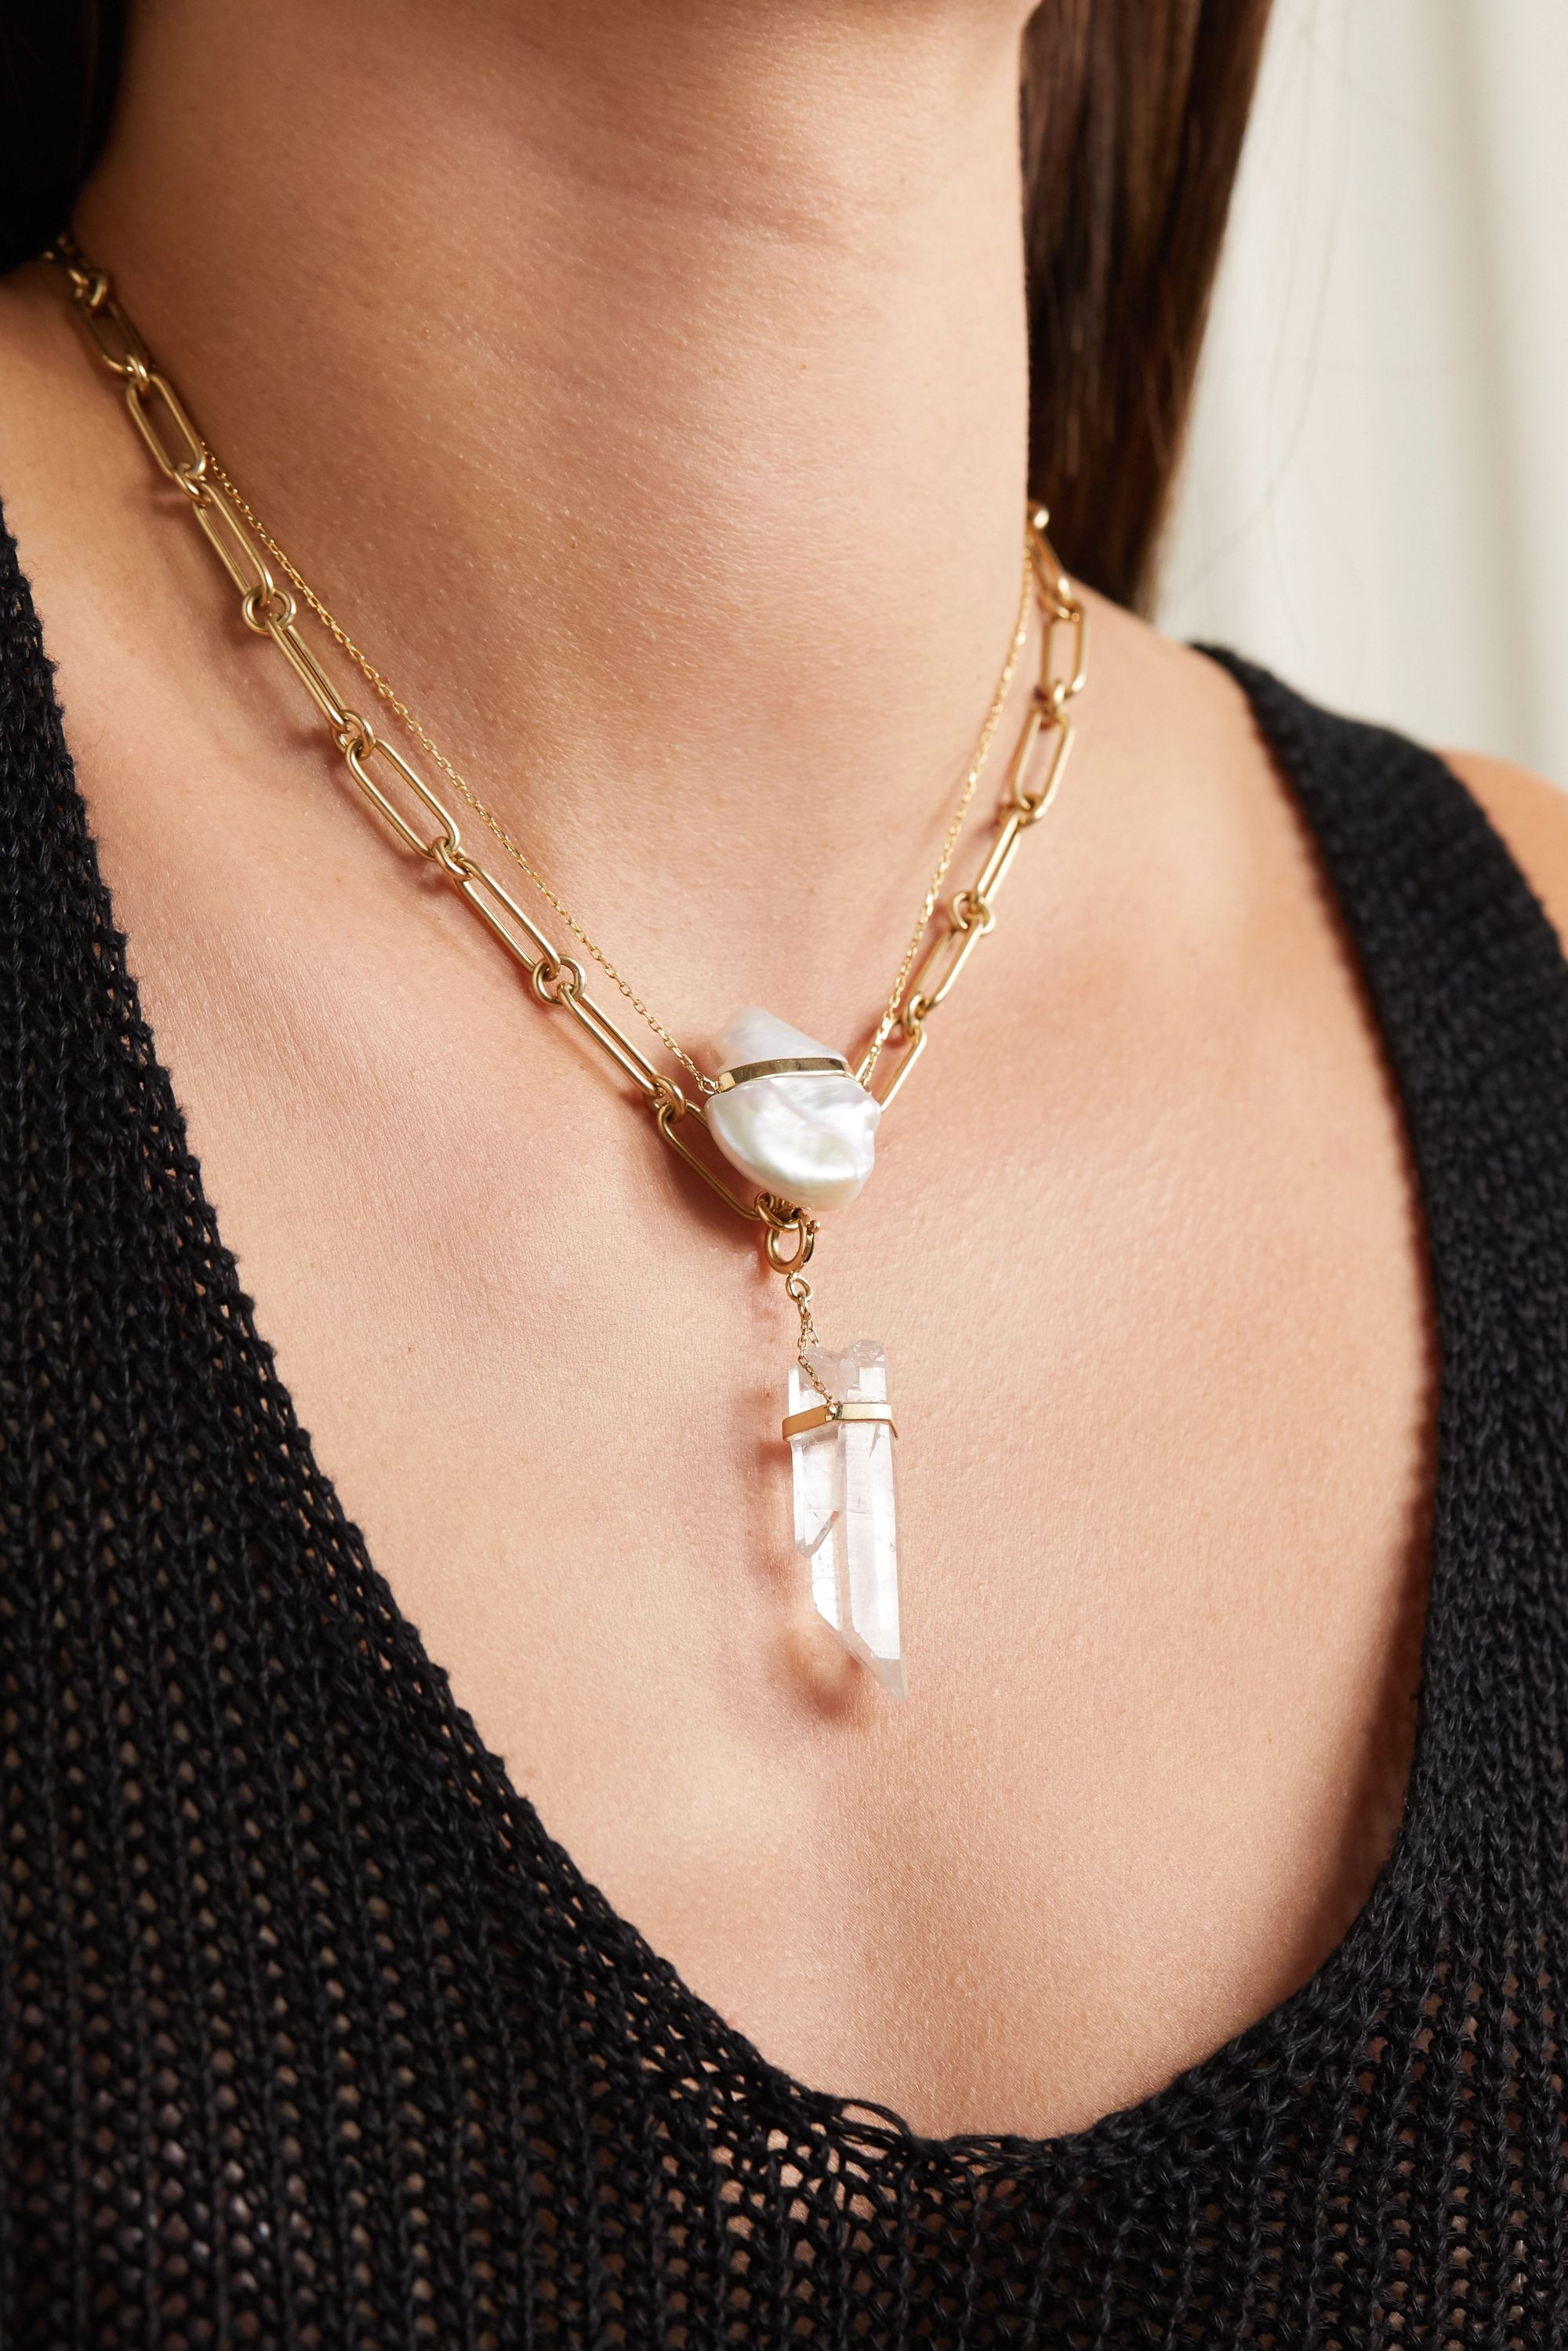 JIA JIA 14-karat gold quartz necklace